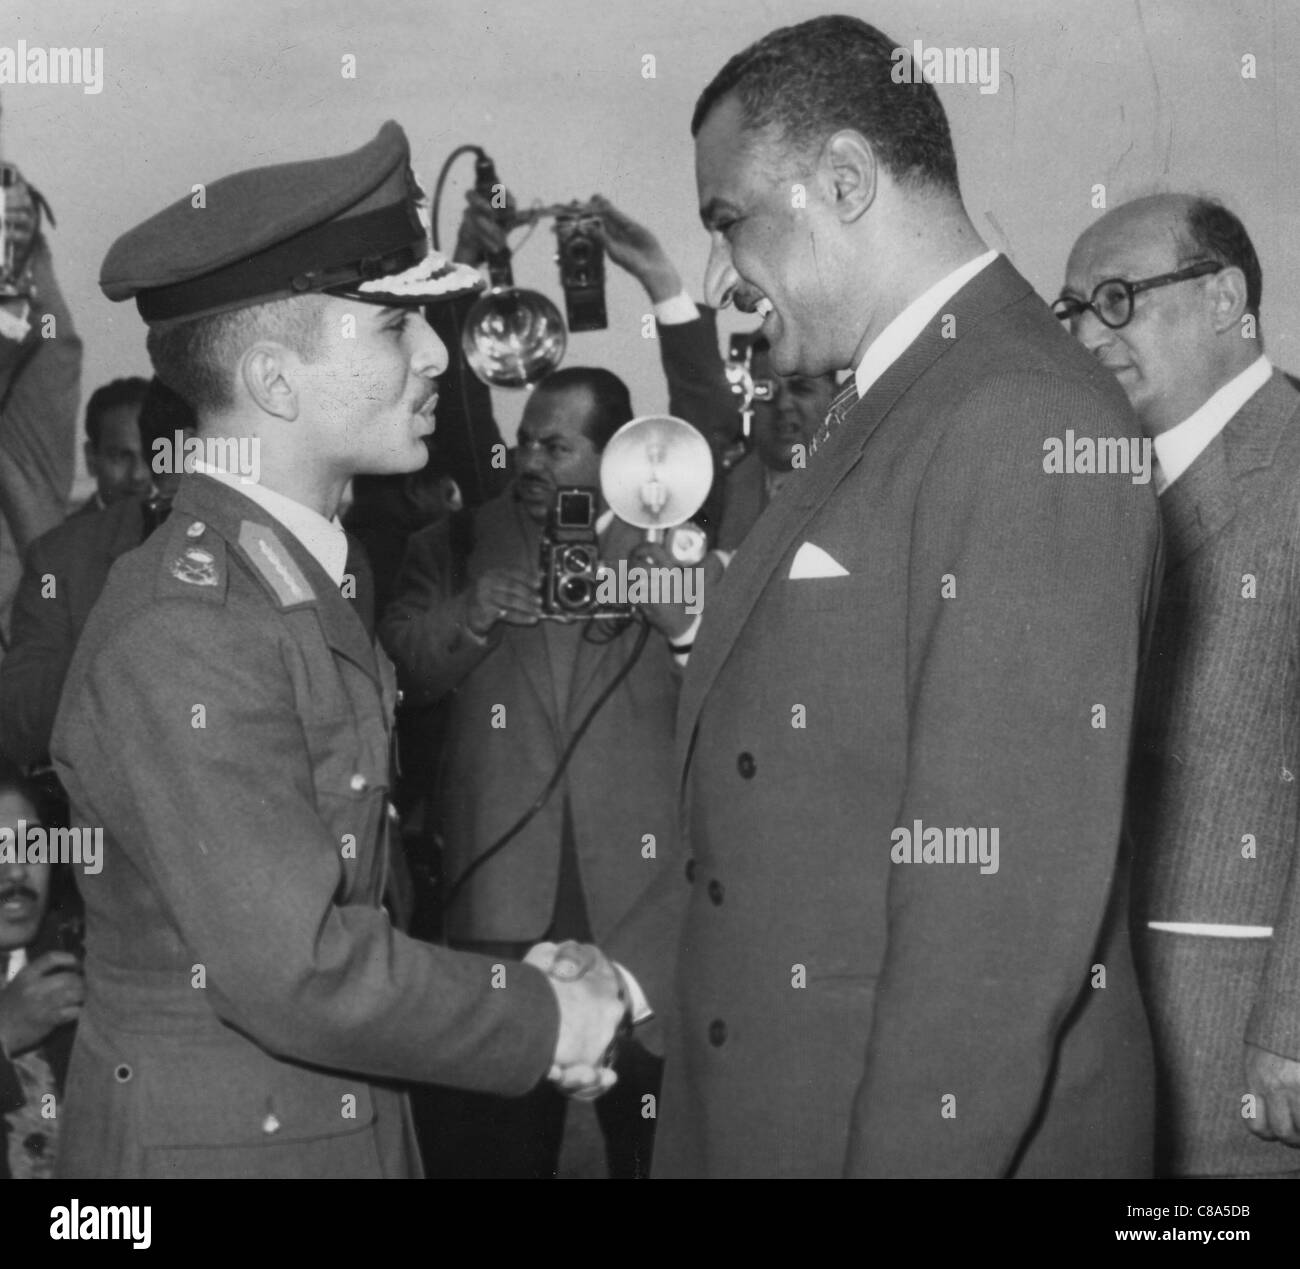 GAMAL ABDEL NASSER (1918-1970) second President of Egypt at right with King Hussein of Jordan - Stock Image